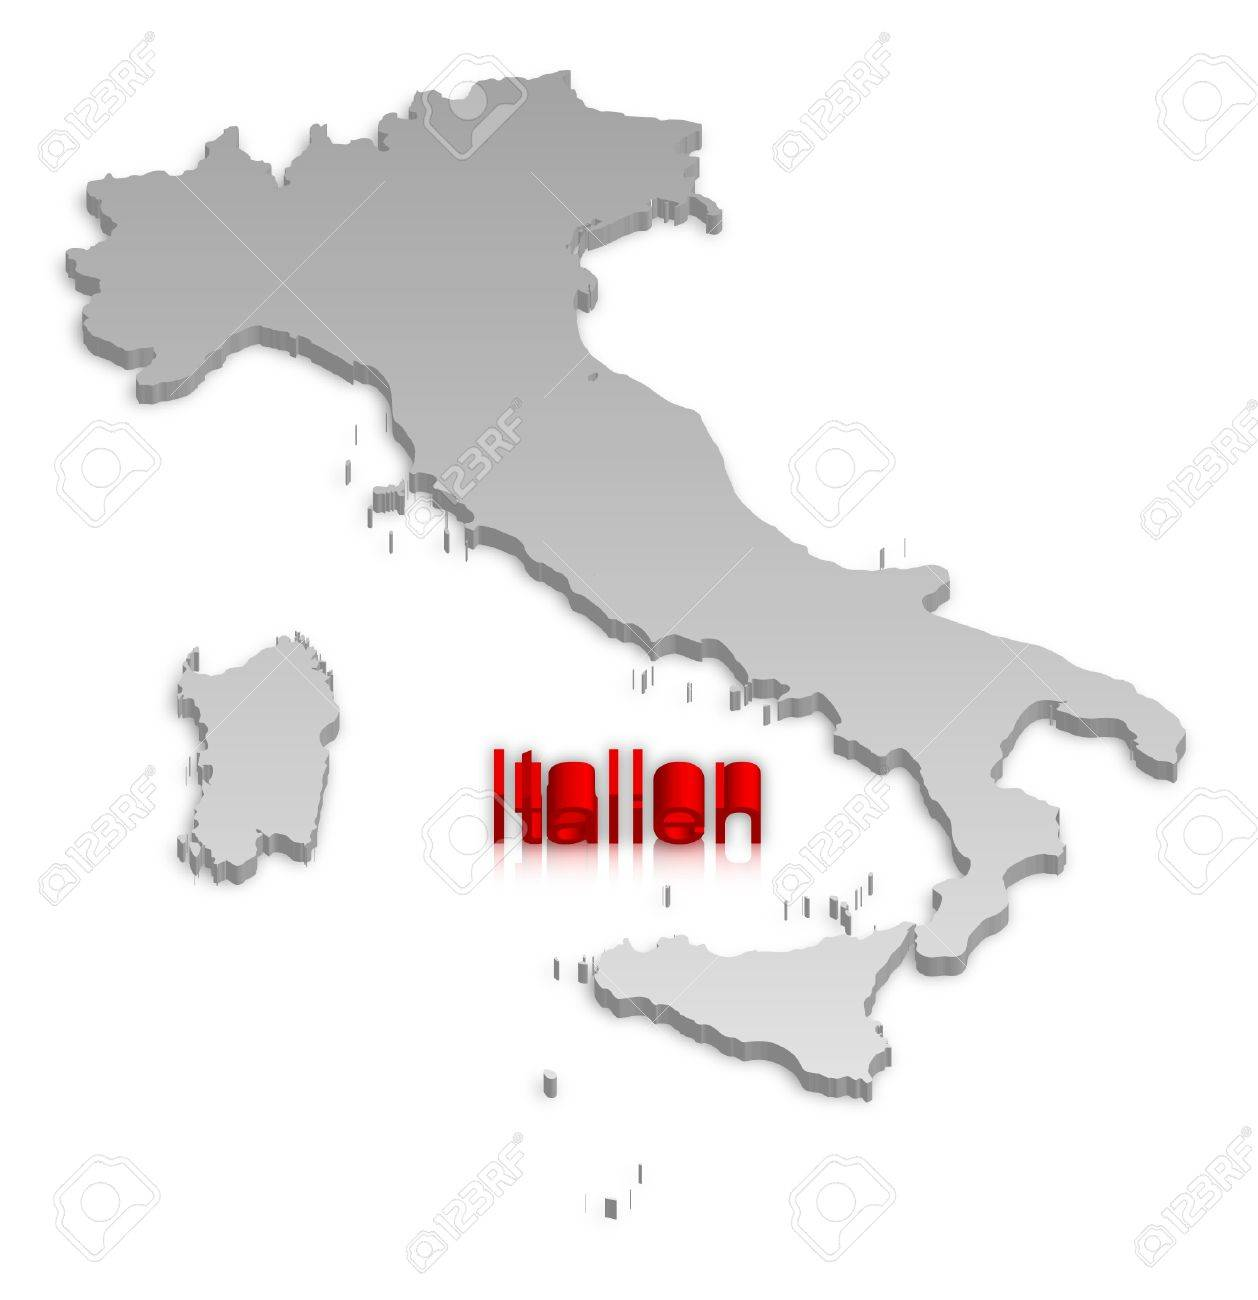 A simple 3D map of Italy. Stock Vector - 9187761